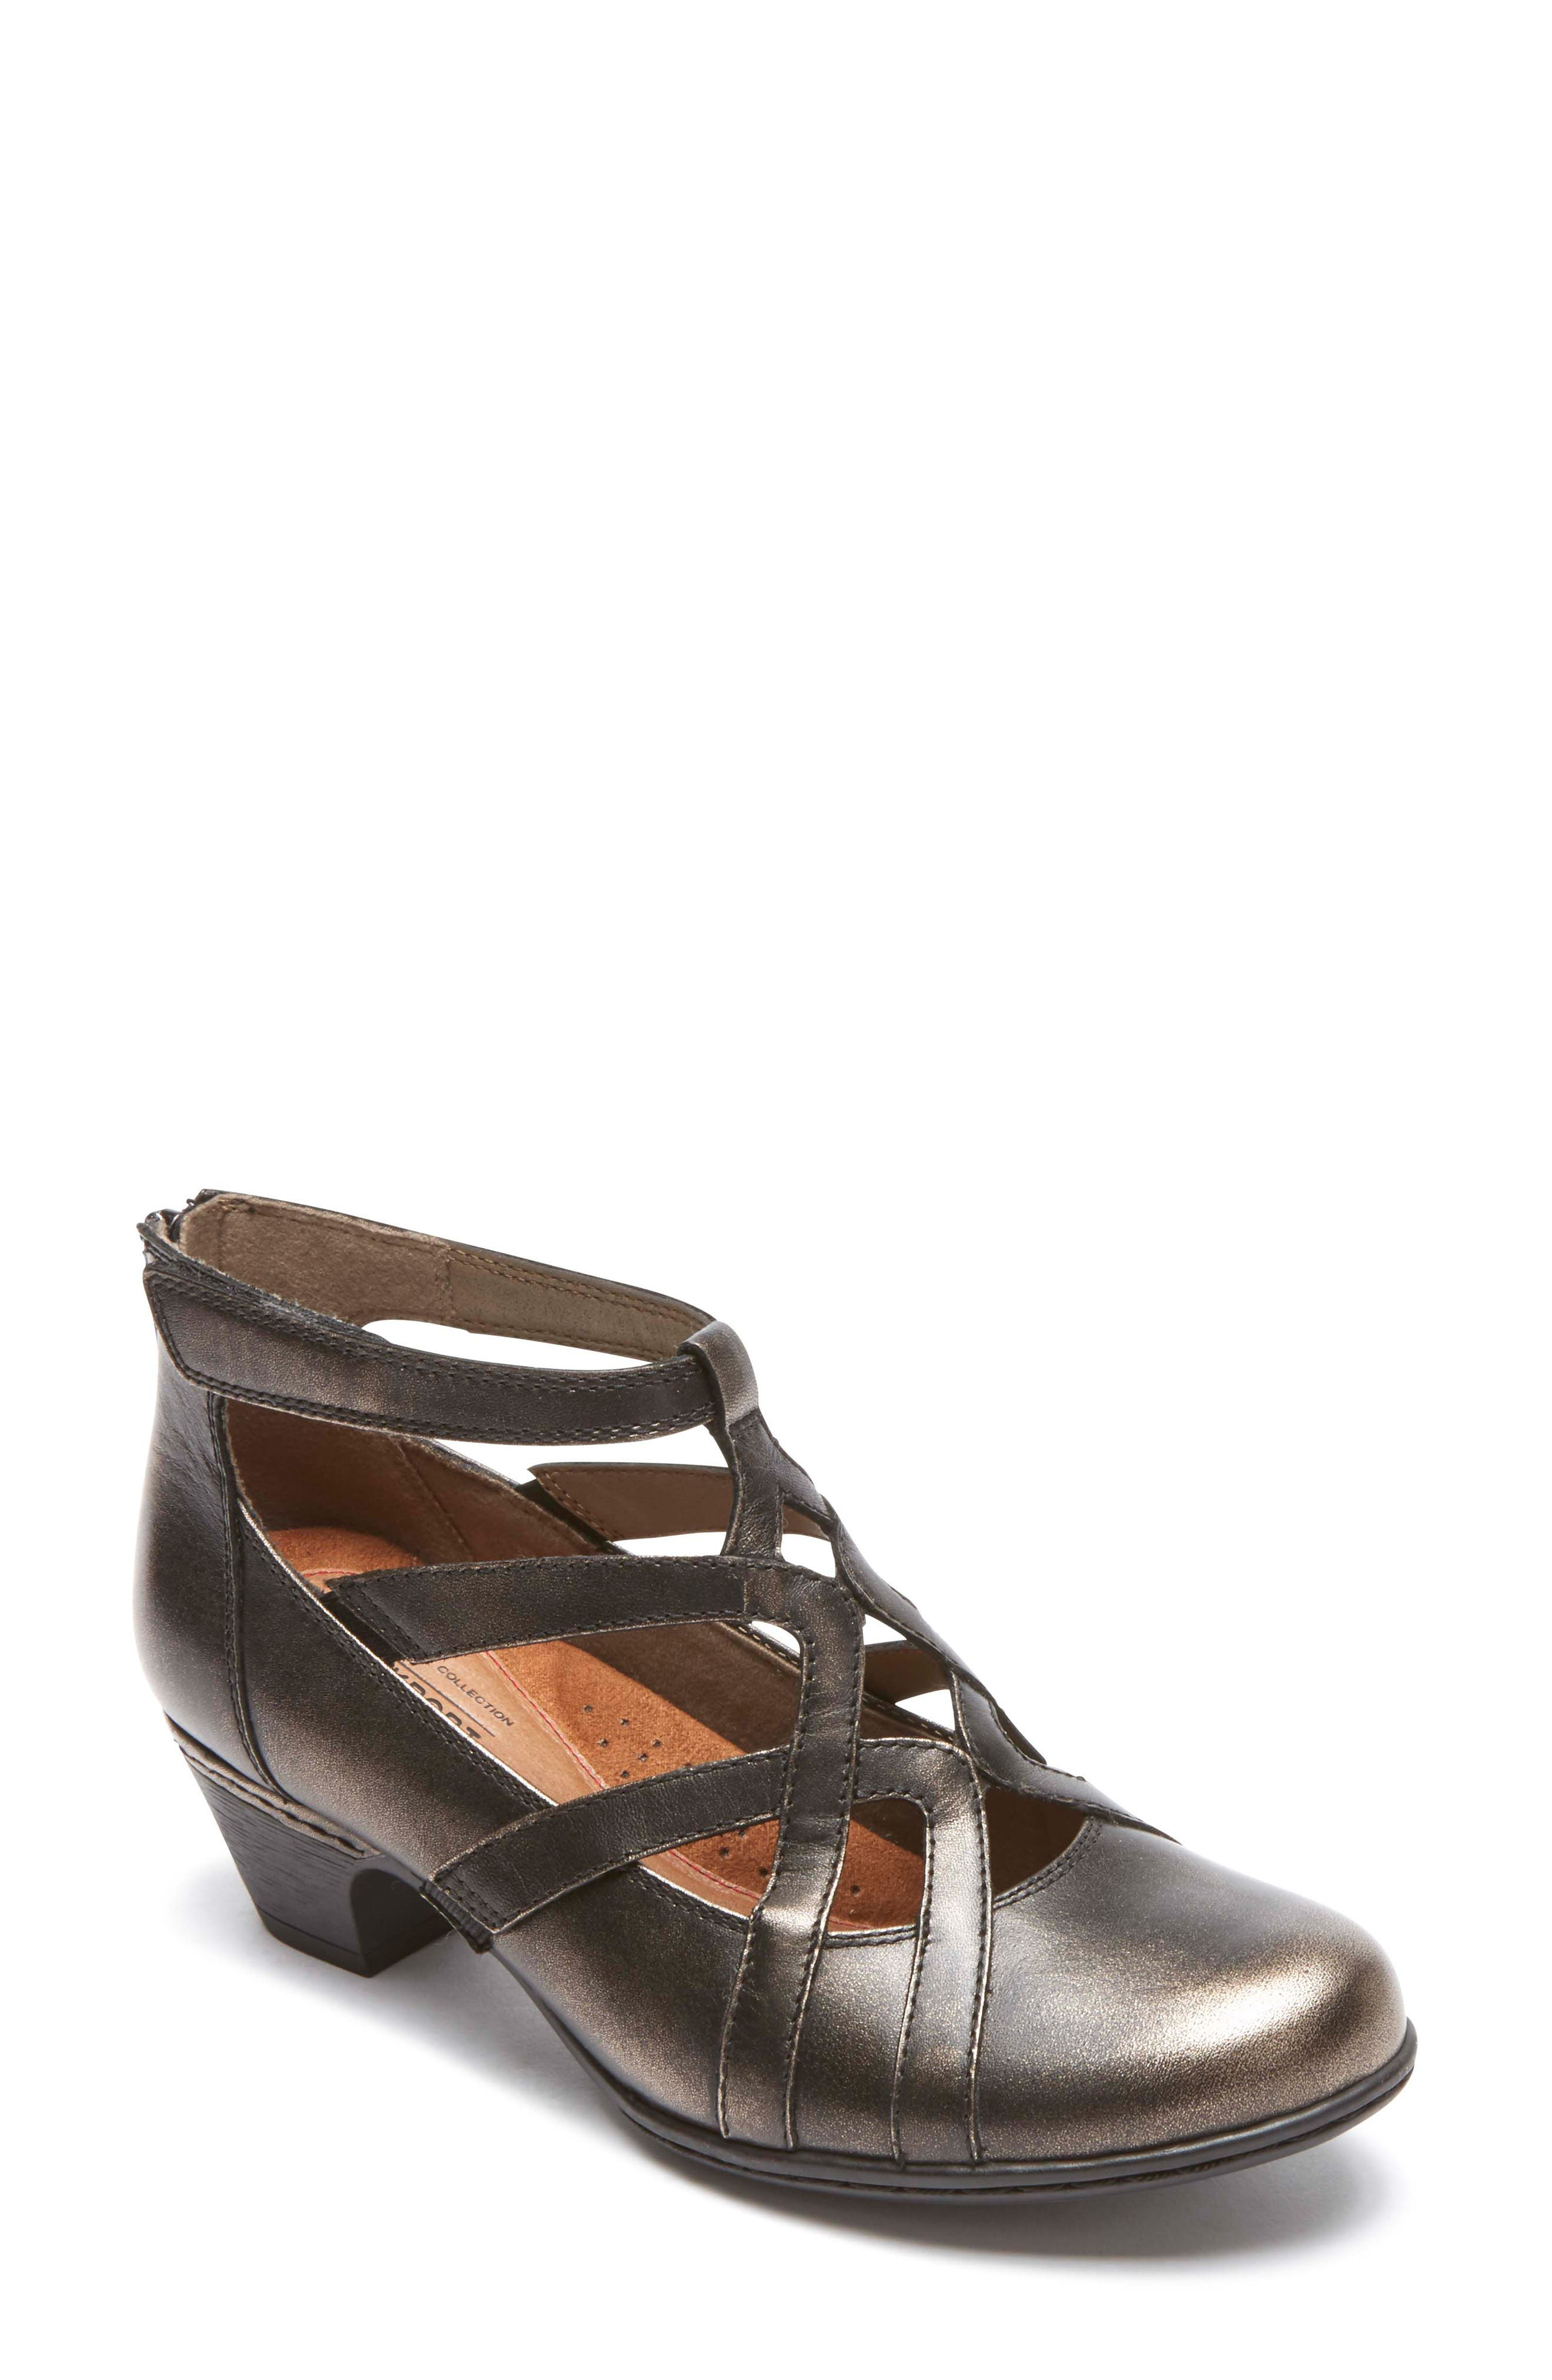 Alternate Image 1 Selected - Rockport Cobb Hill Adrina Pump (Women)